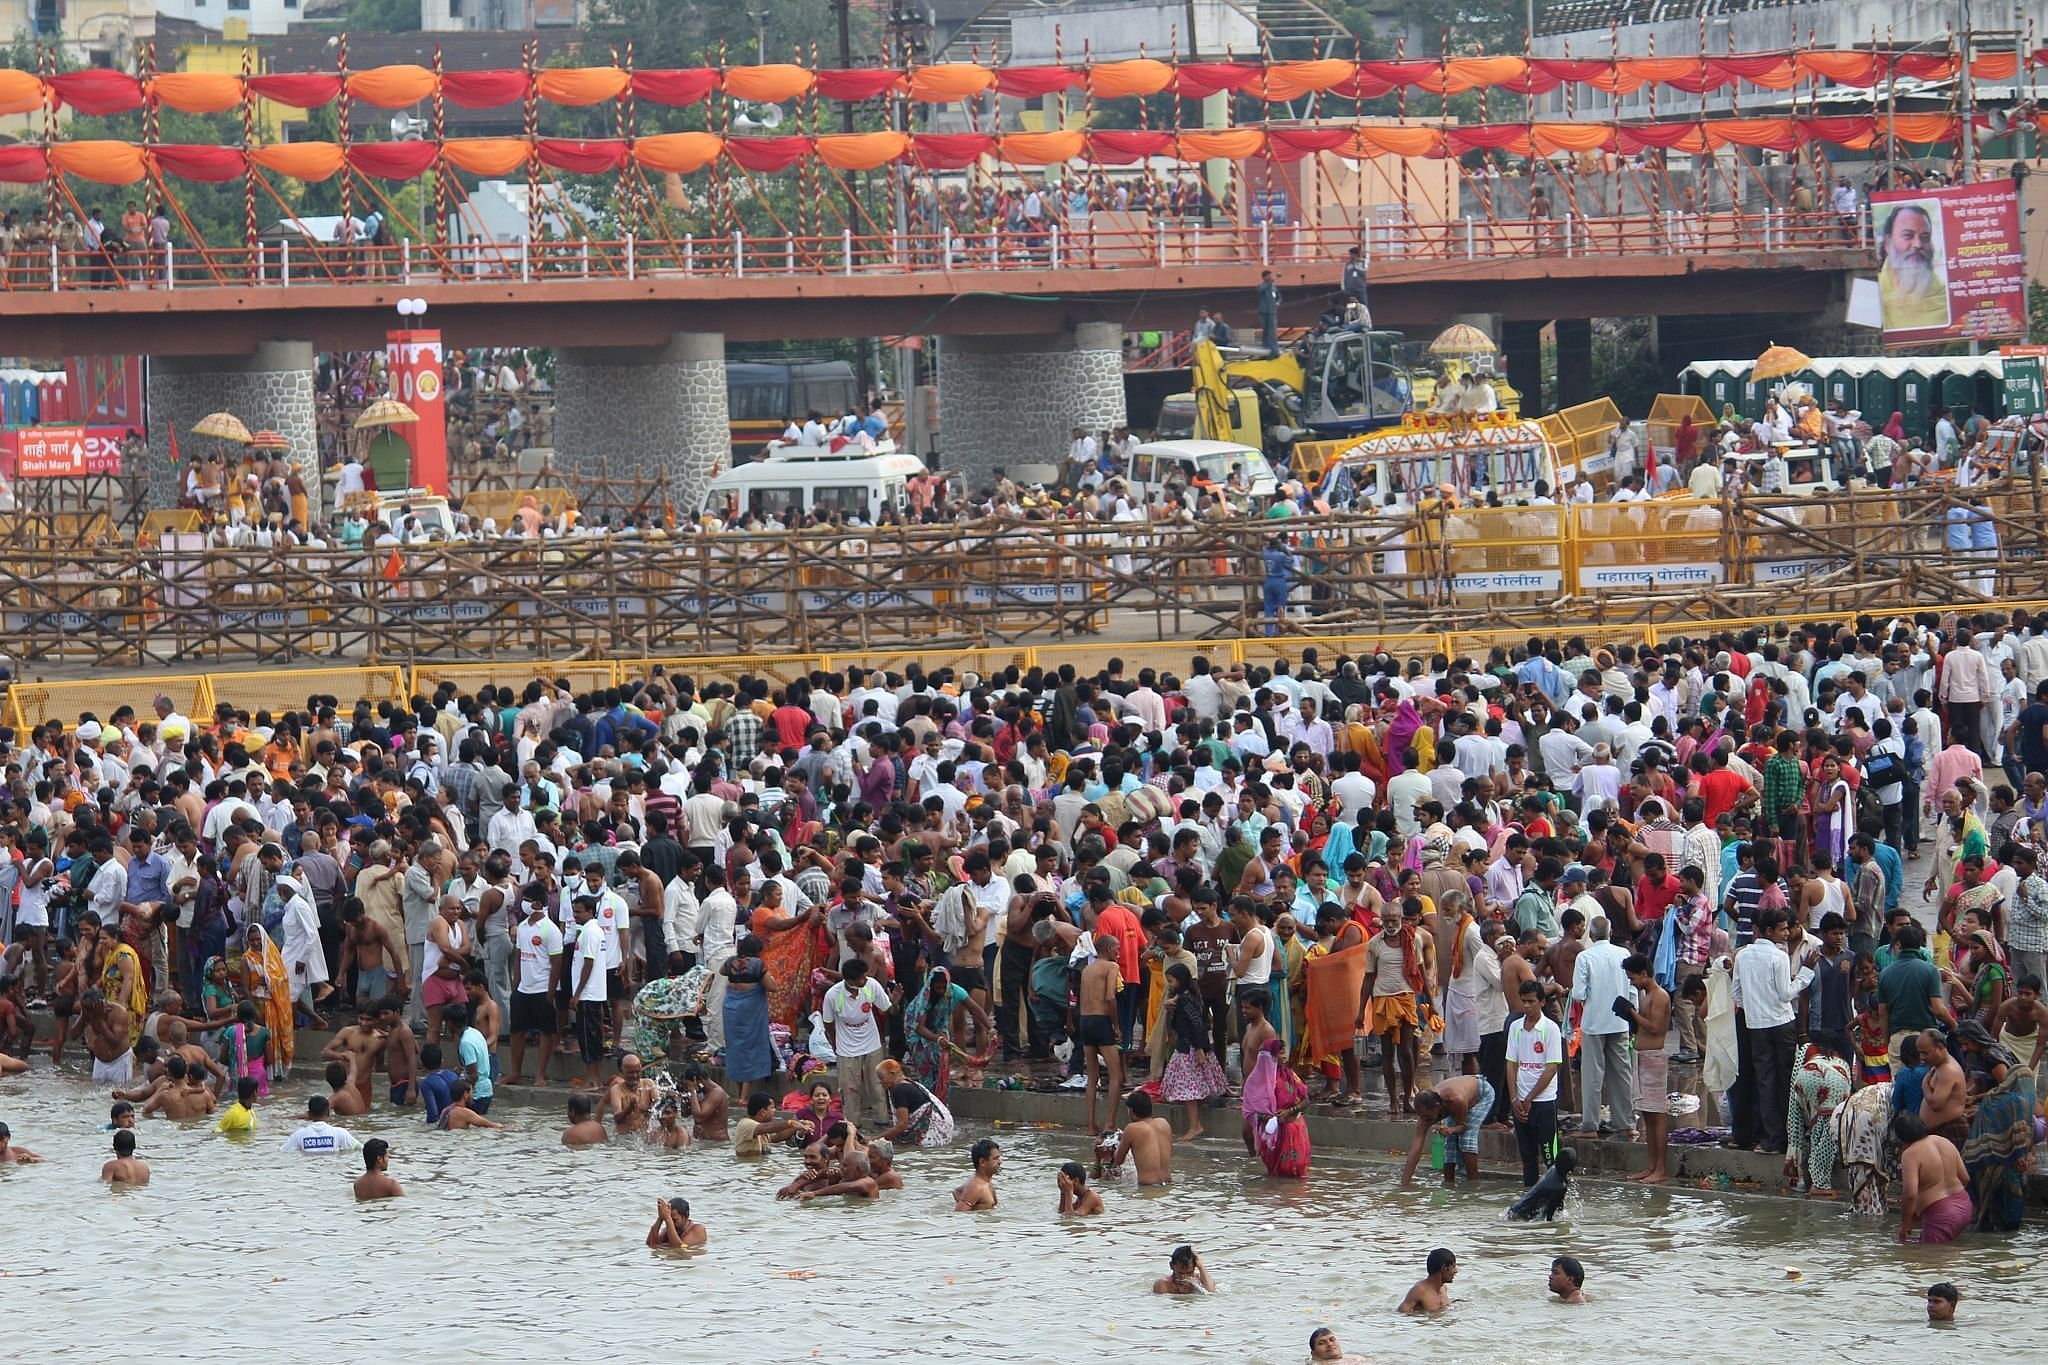 The shahi snan area and procession separated by barricades at Ramkund, Nashik